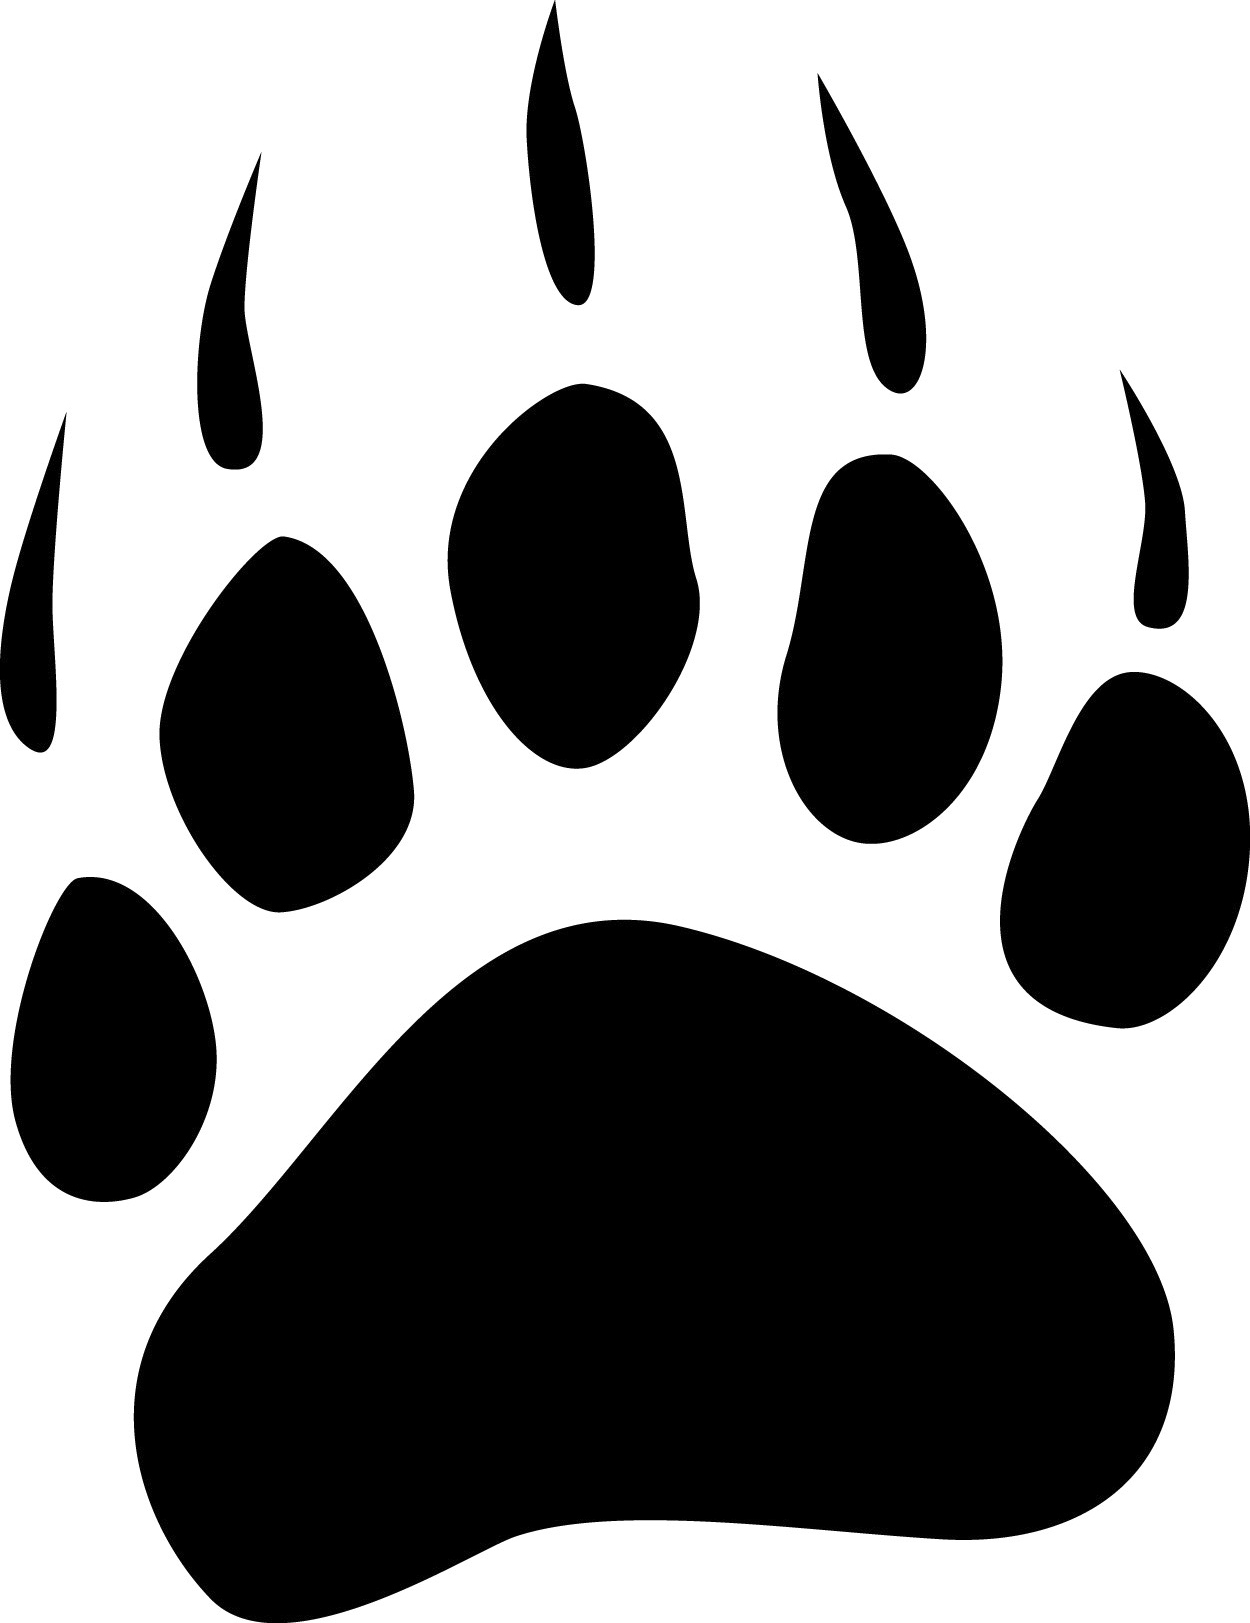 Paw Tracks Clipart - Clipart Kid